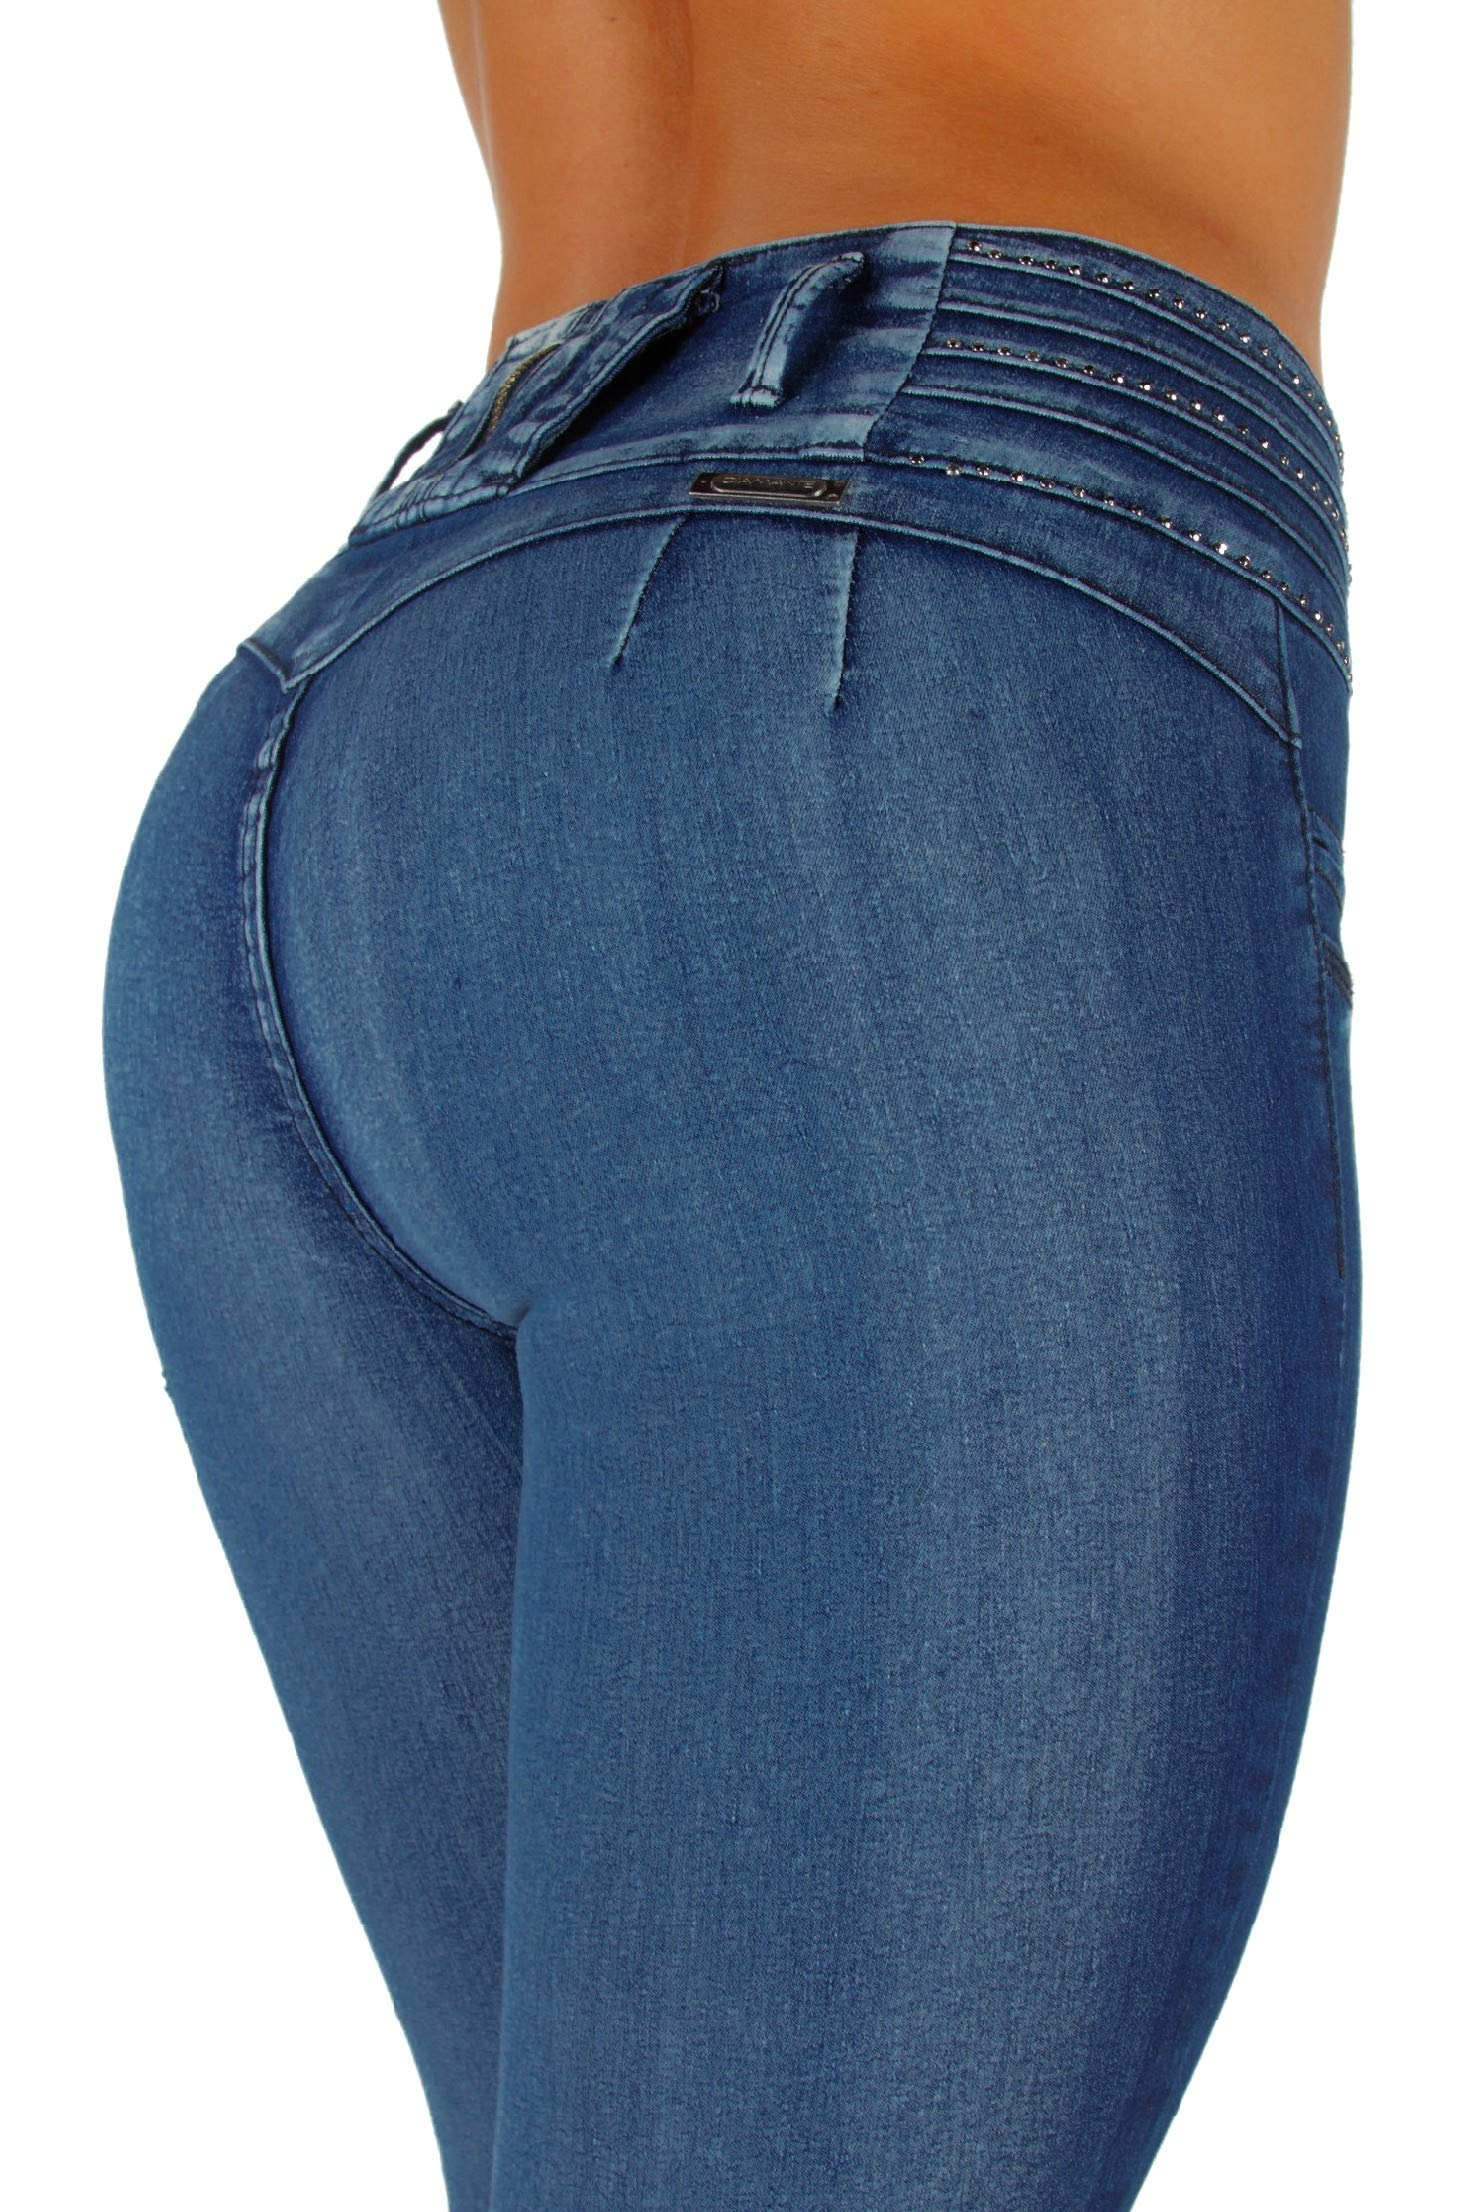 Style K064– Colombian Design, Mid Waist, Butt Lift, Levanta Cola, Skinny Jeans in Washed Blue Size 5